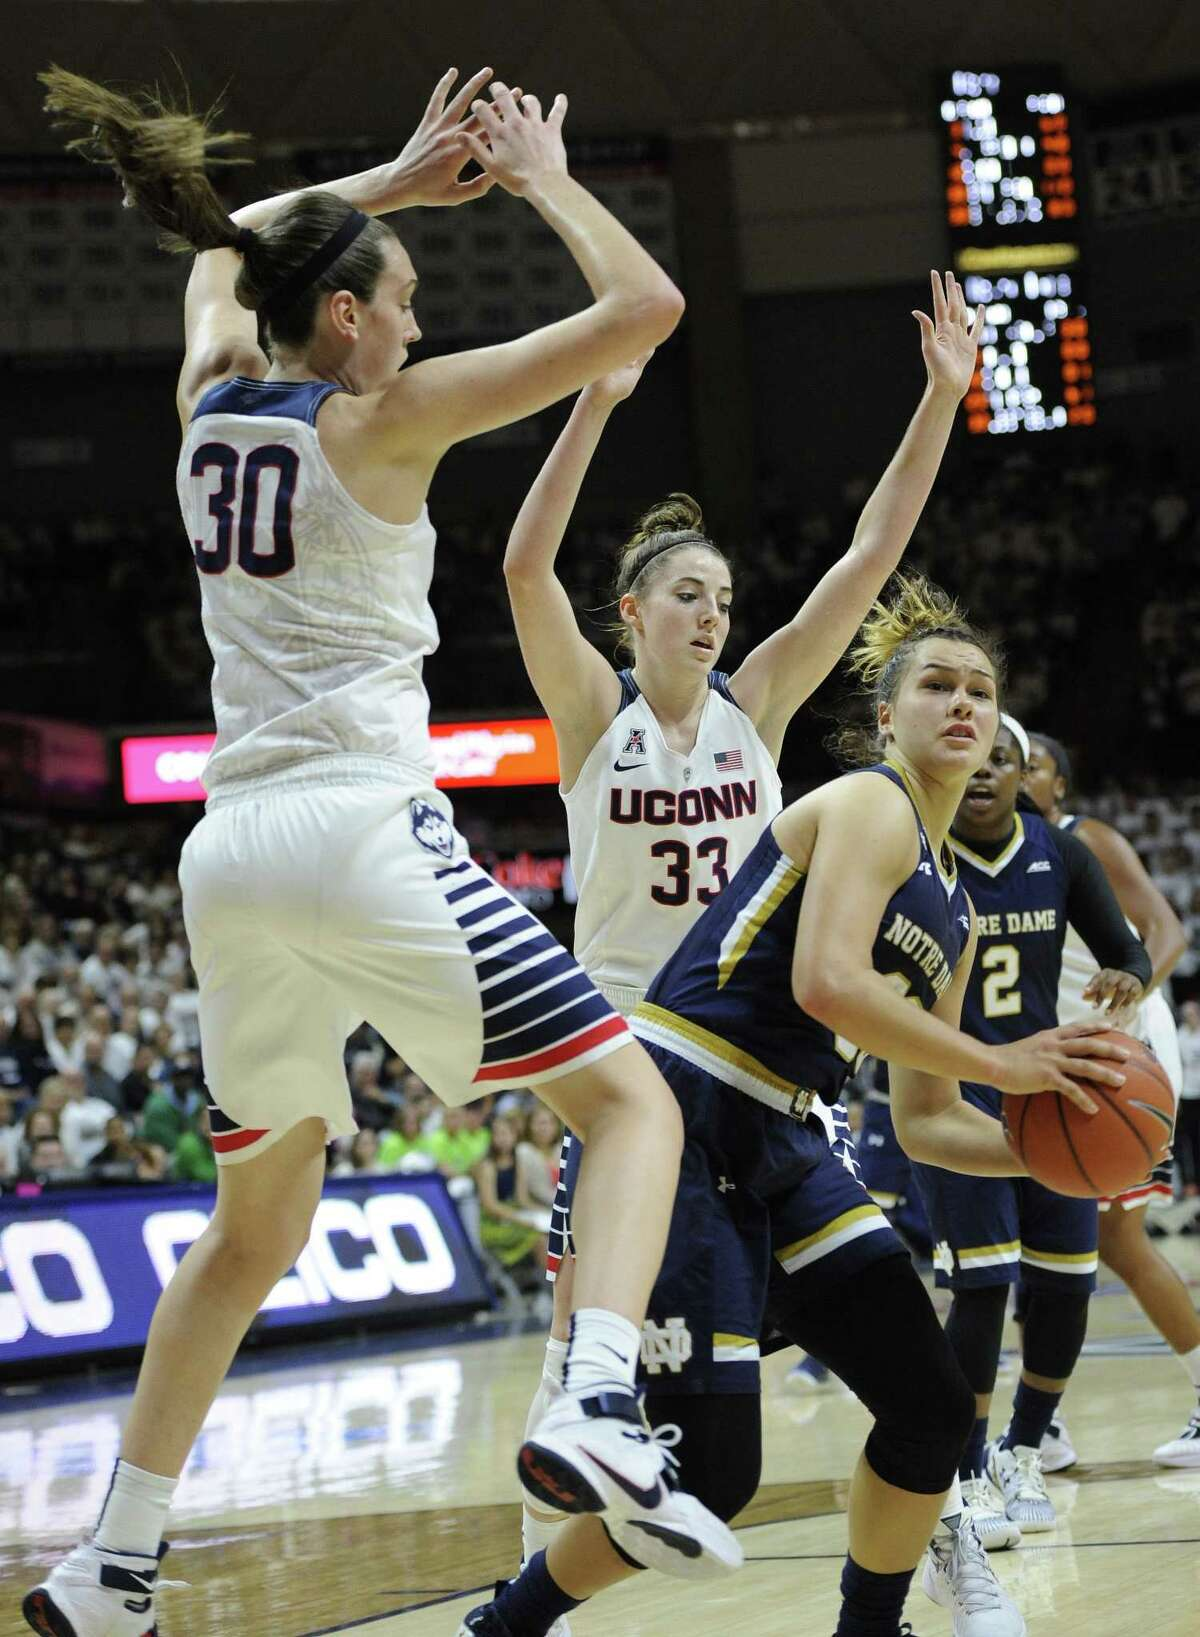 UConn's Breanna Stewart, left, and Katie Lou Samuelson, center, guard Notre Dame's Kathryn Westbeld during Saturday's game.